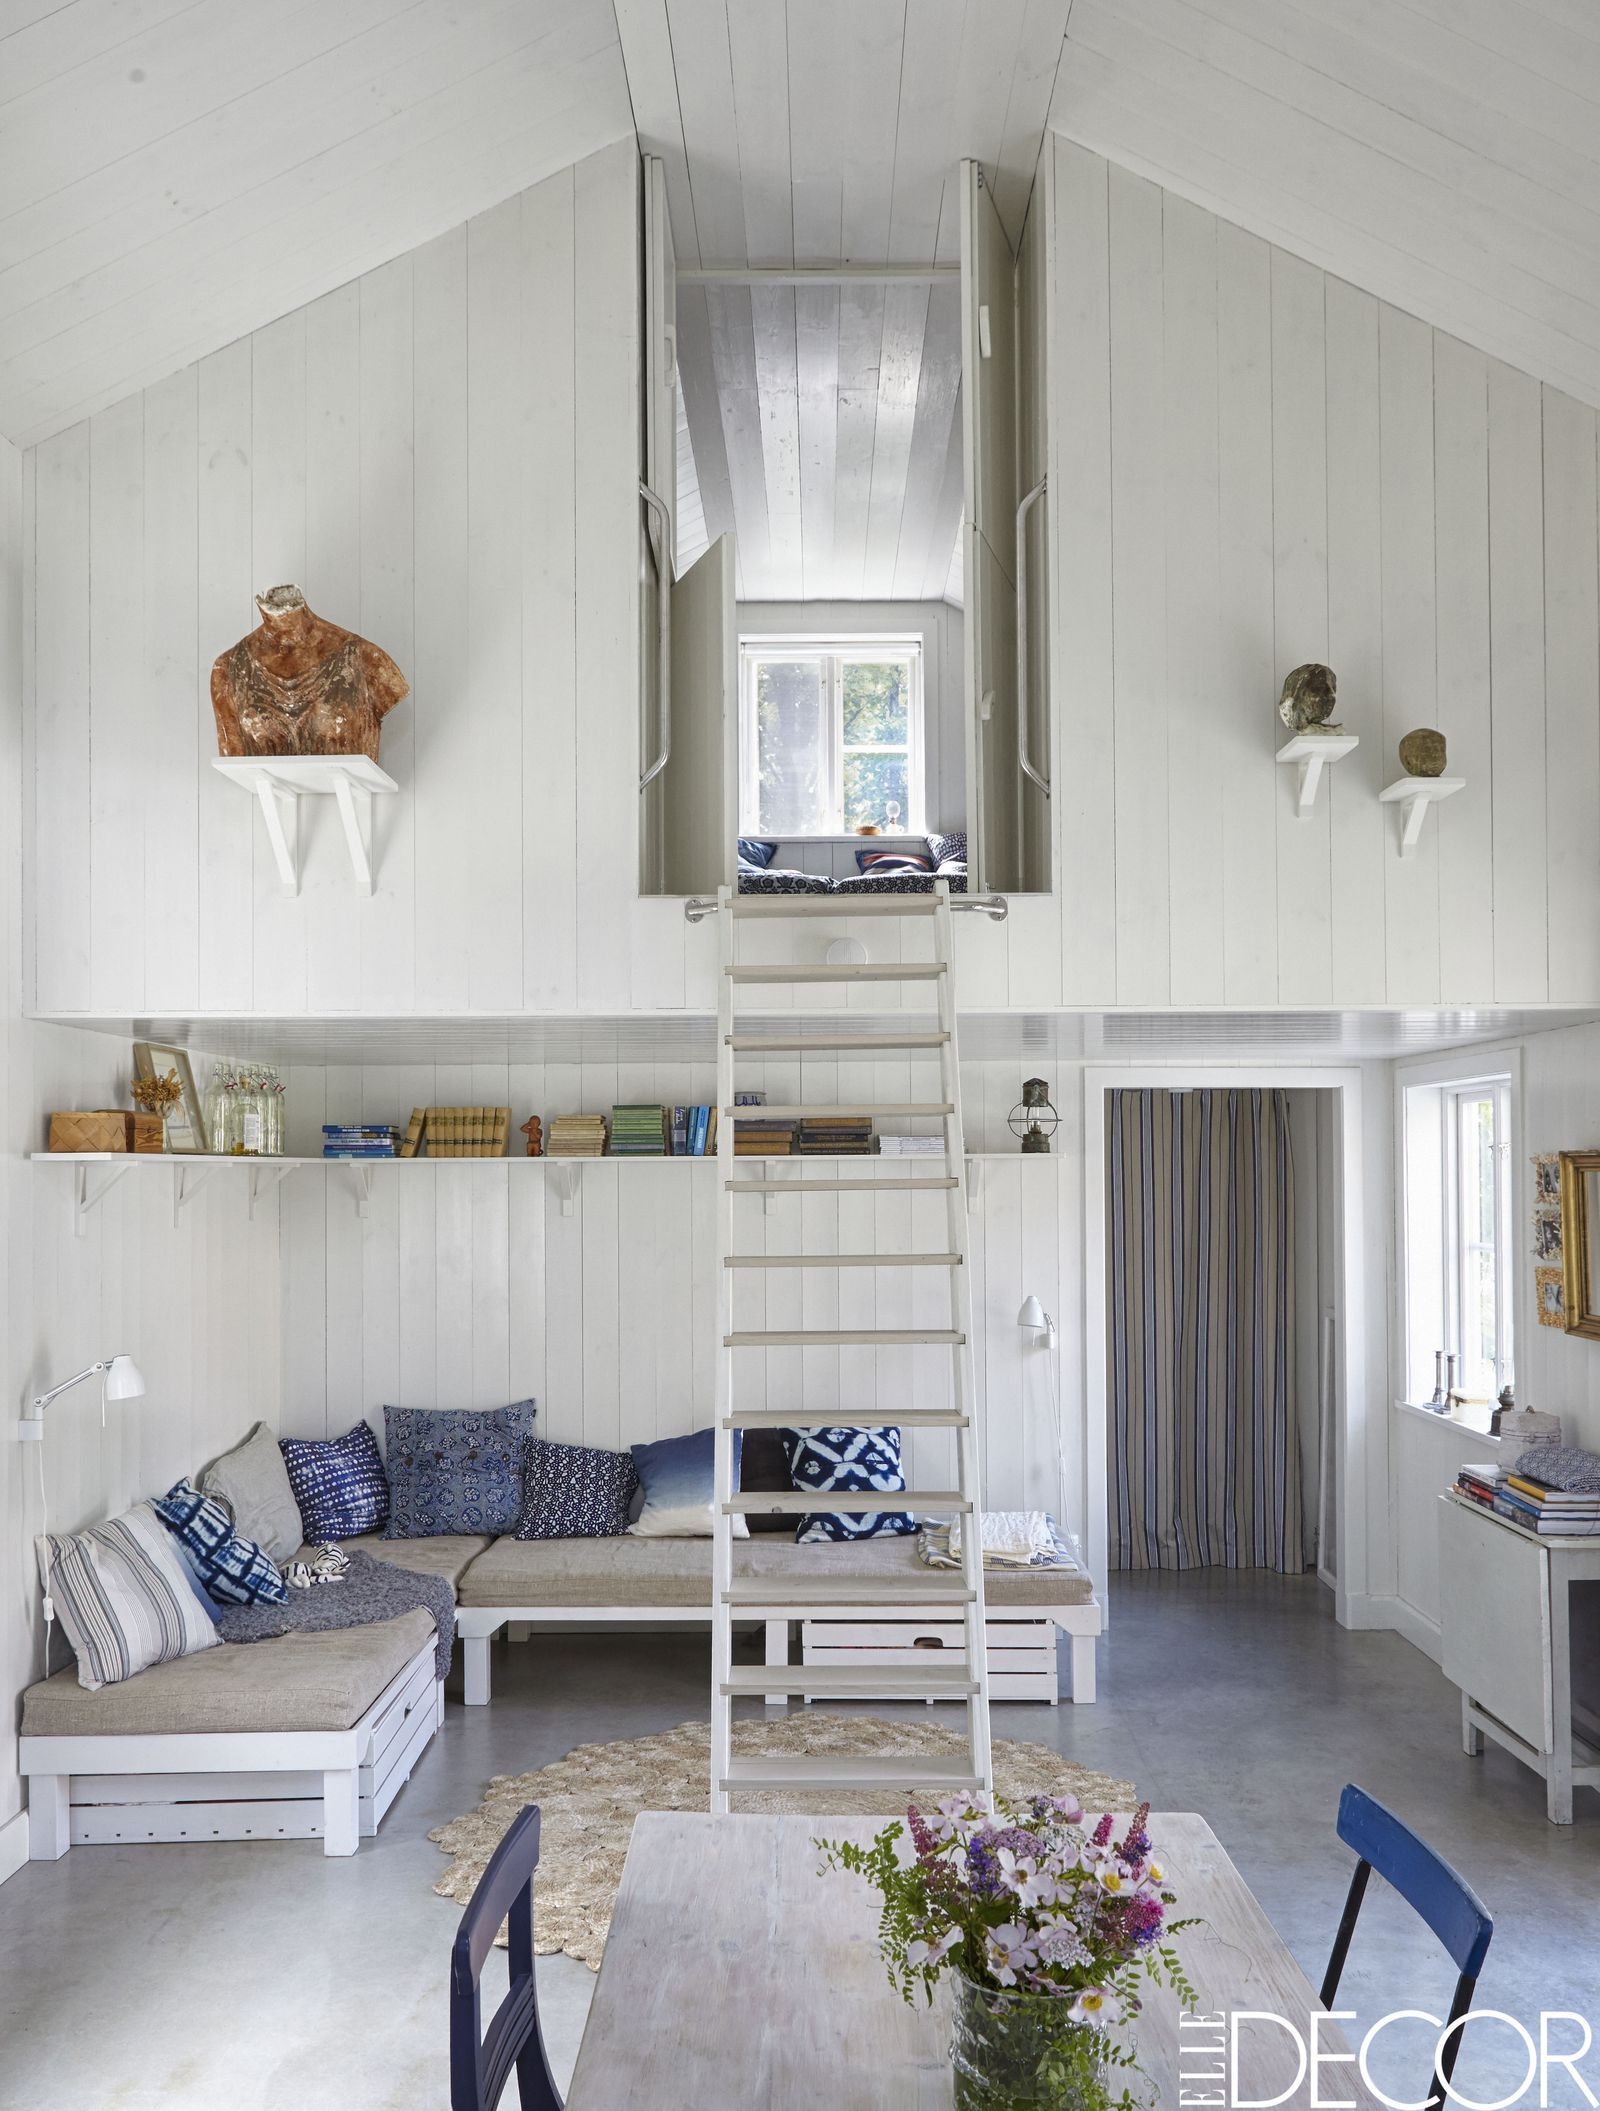 This Rustic, Minimalist Swedish Cottage Is The Most Charming Getaway